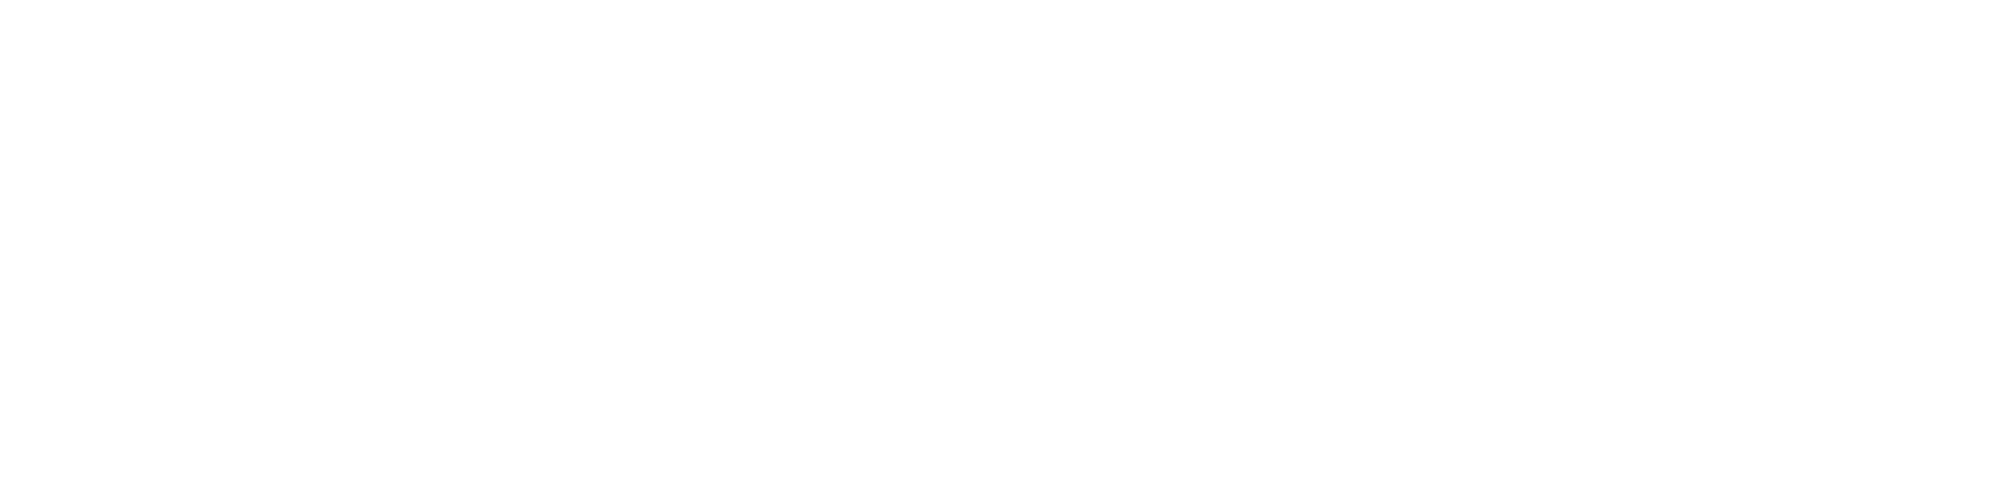 National Endowment of the Humanities - logo